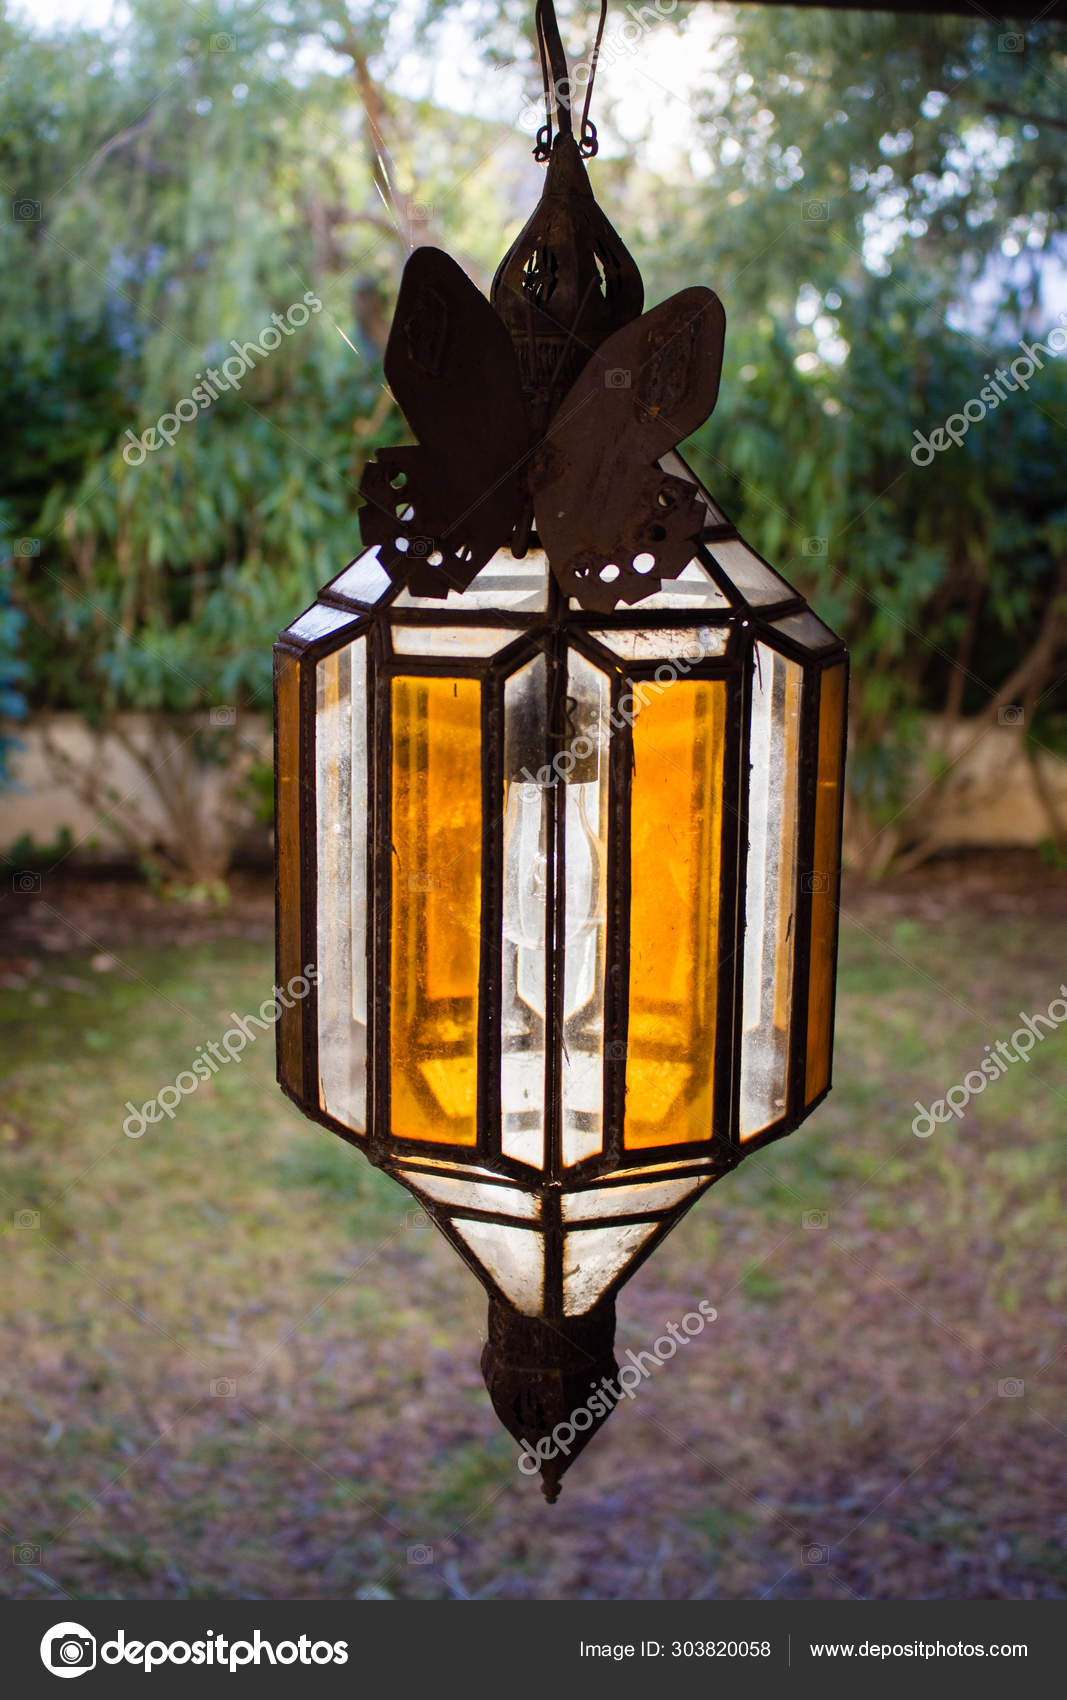 Vintage Outdoor Porch Pendant Lamp Garden Fixture Lights Vintage Terrace Stock Photo Image By C Ollyplu 303820058